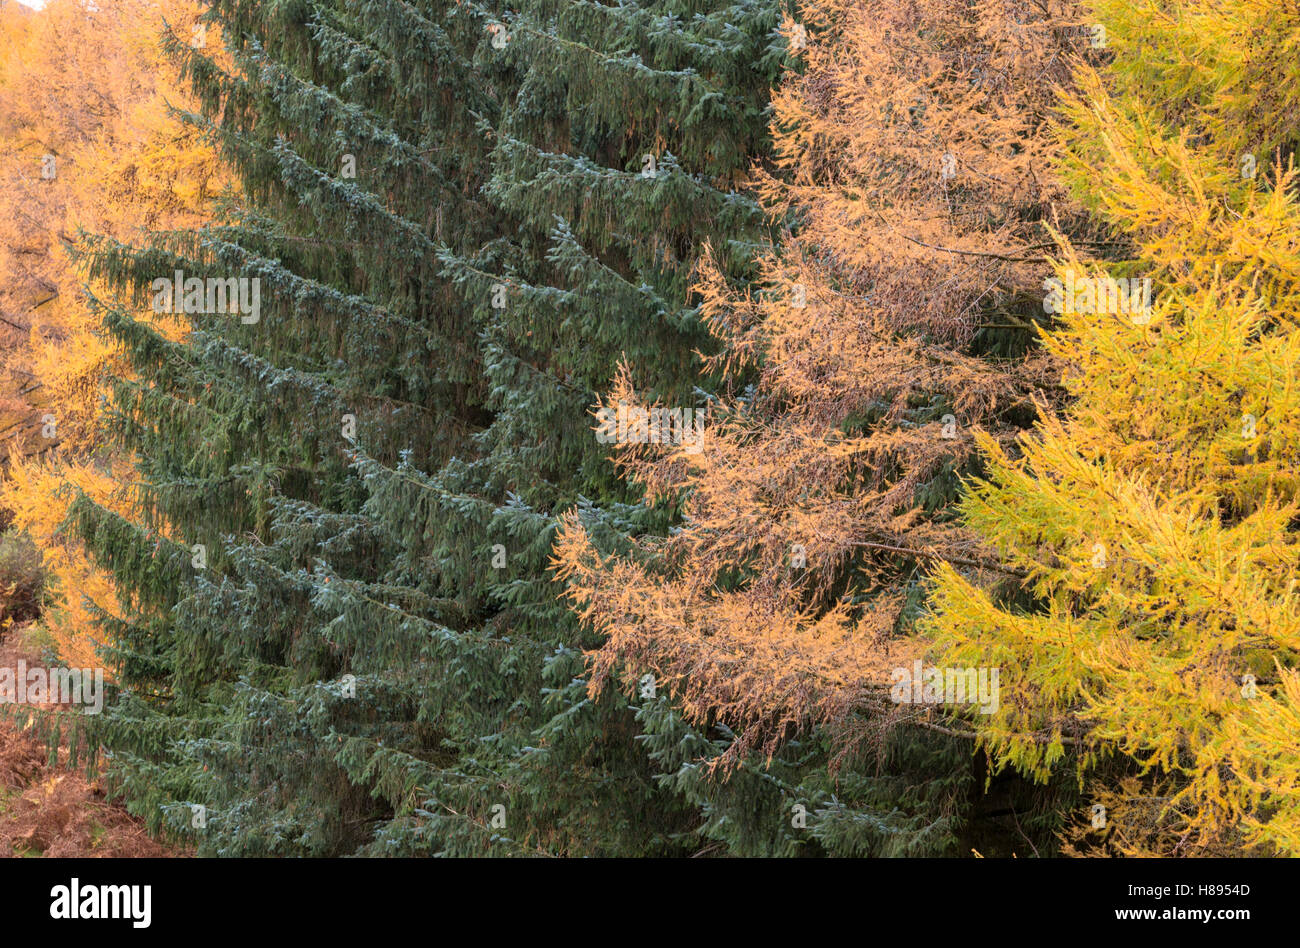 An autumn in a coniferous forests, Wales, UK - Stock Image